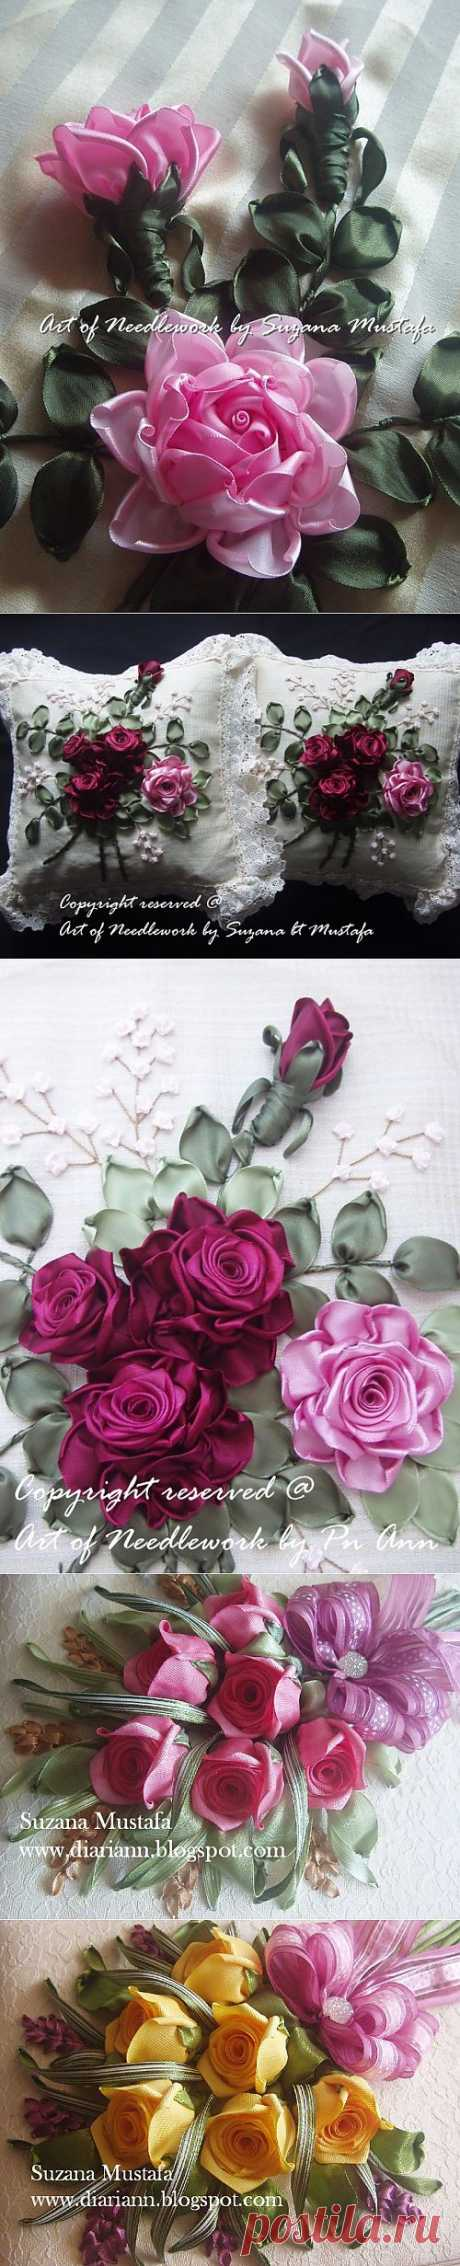 Volume embroidery tapes. ROSES. Photo master class.